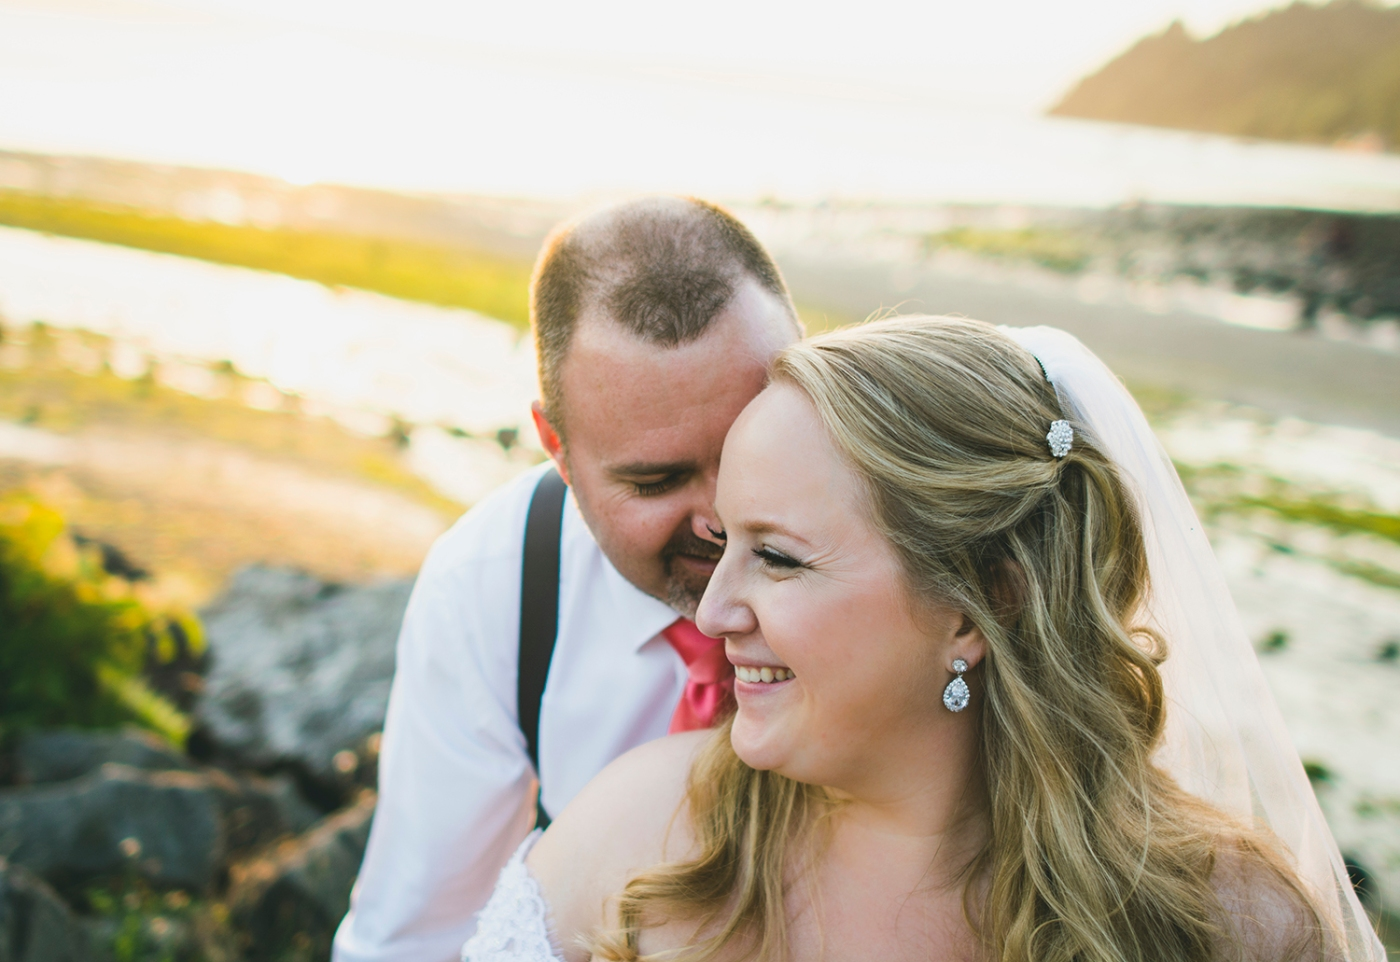 Jane_Speleers_Photography_Seattle_Wedding_waterfront_NW_JS7_9636